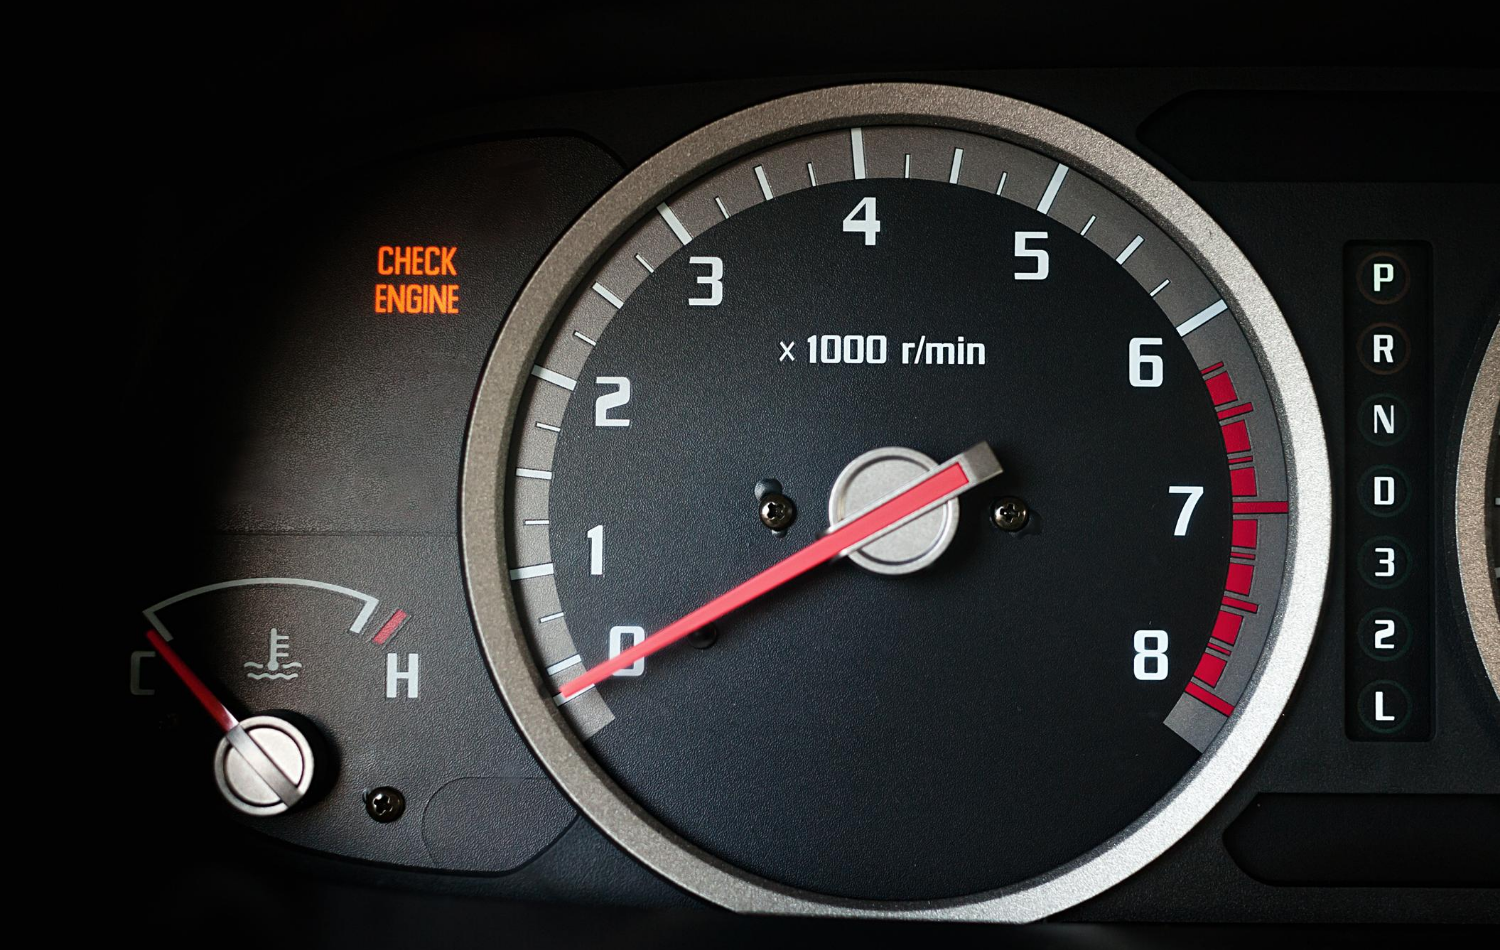 Stop Driving if Your Check Engine Light Comes On